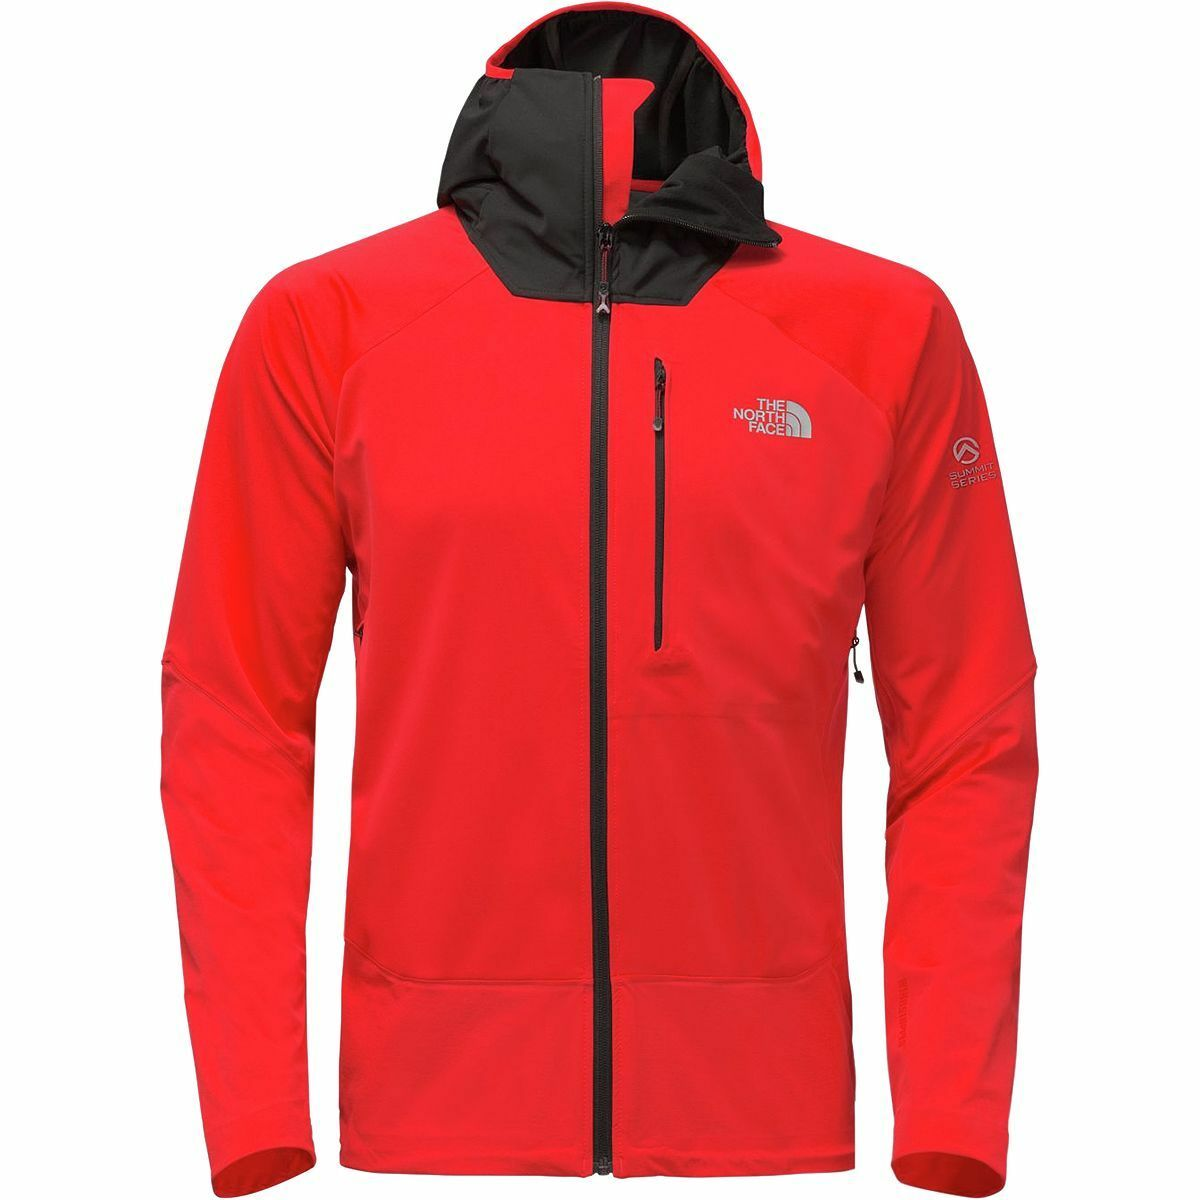 The North Face Séries Summit  L4 Coupe-Vent Tissu Softshell Sweat Veste red Feu  all products get up to 34% off